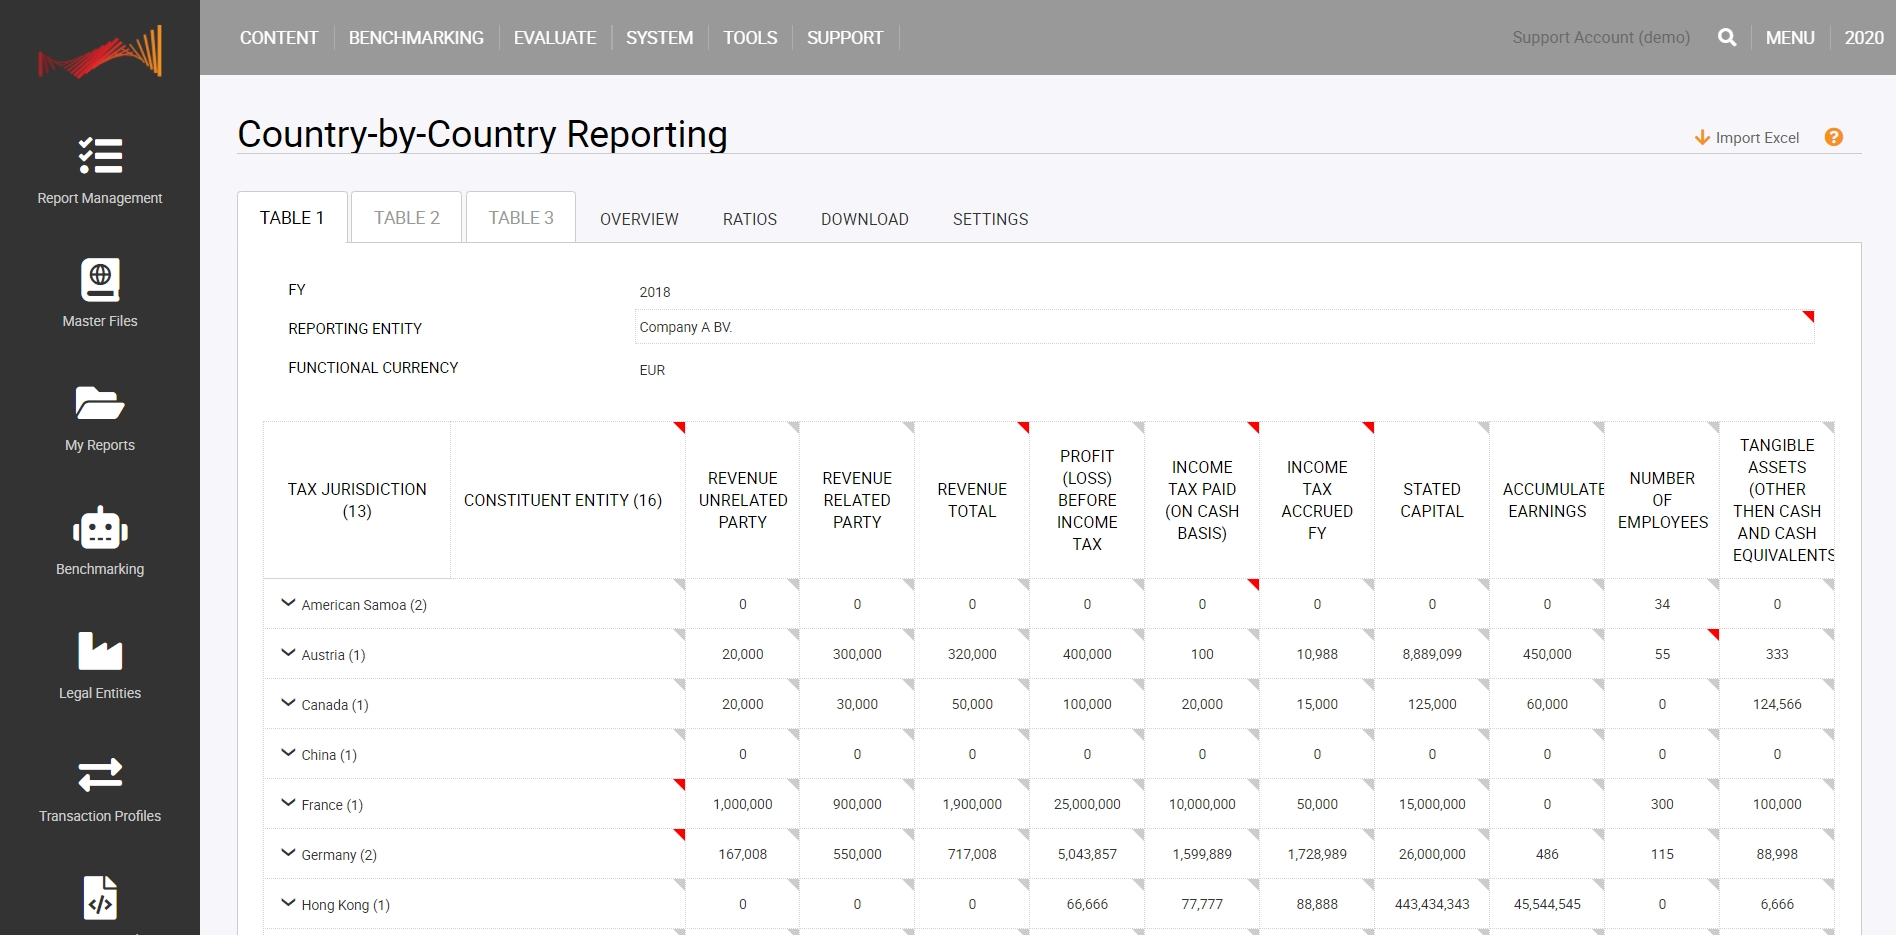 Country-by-Country Reporting Table 1